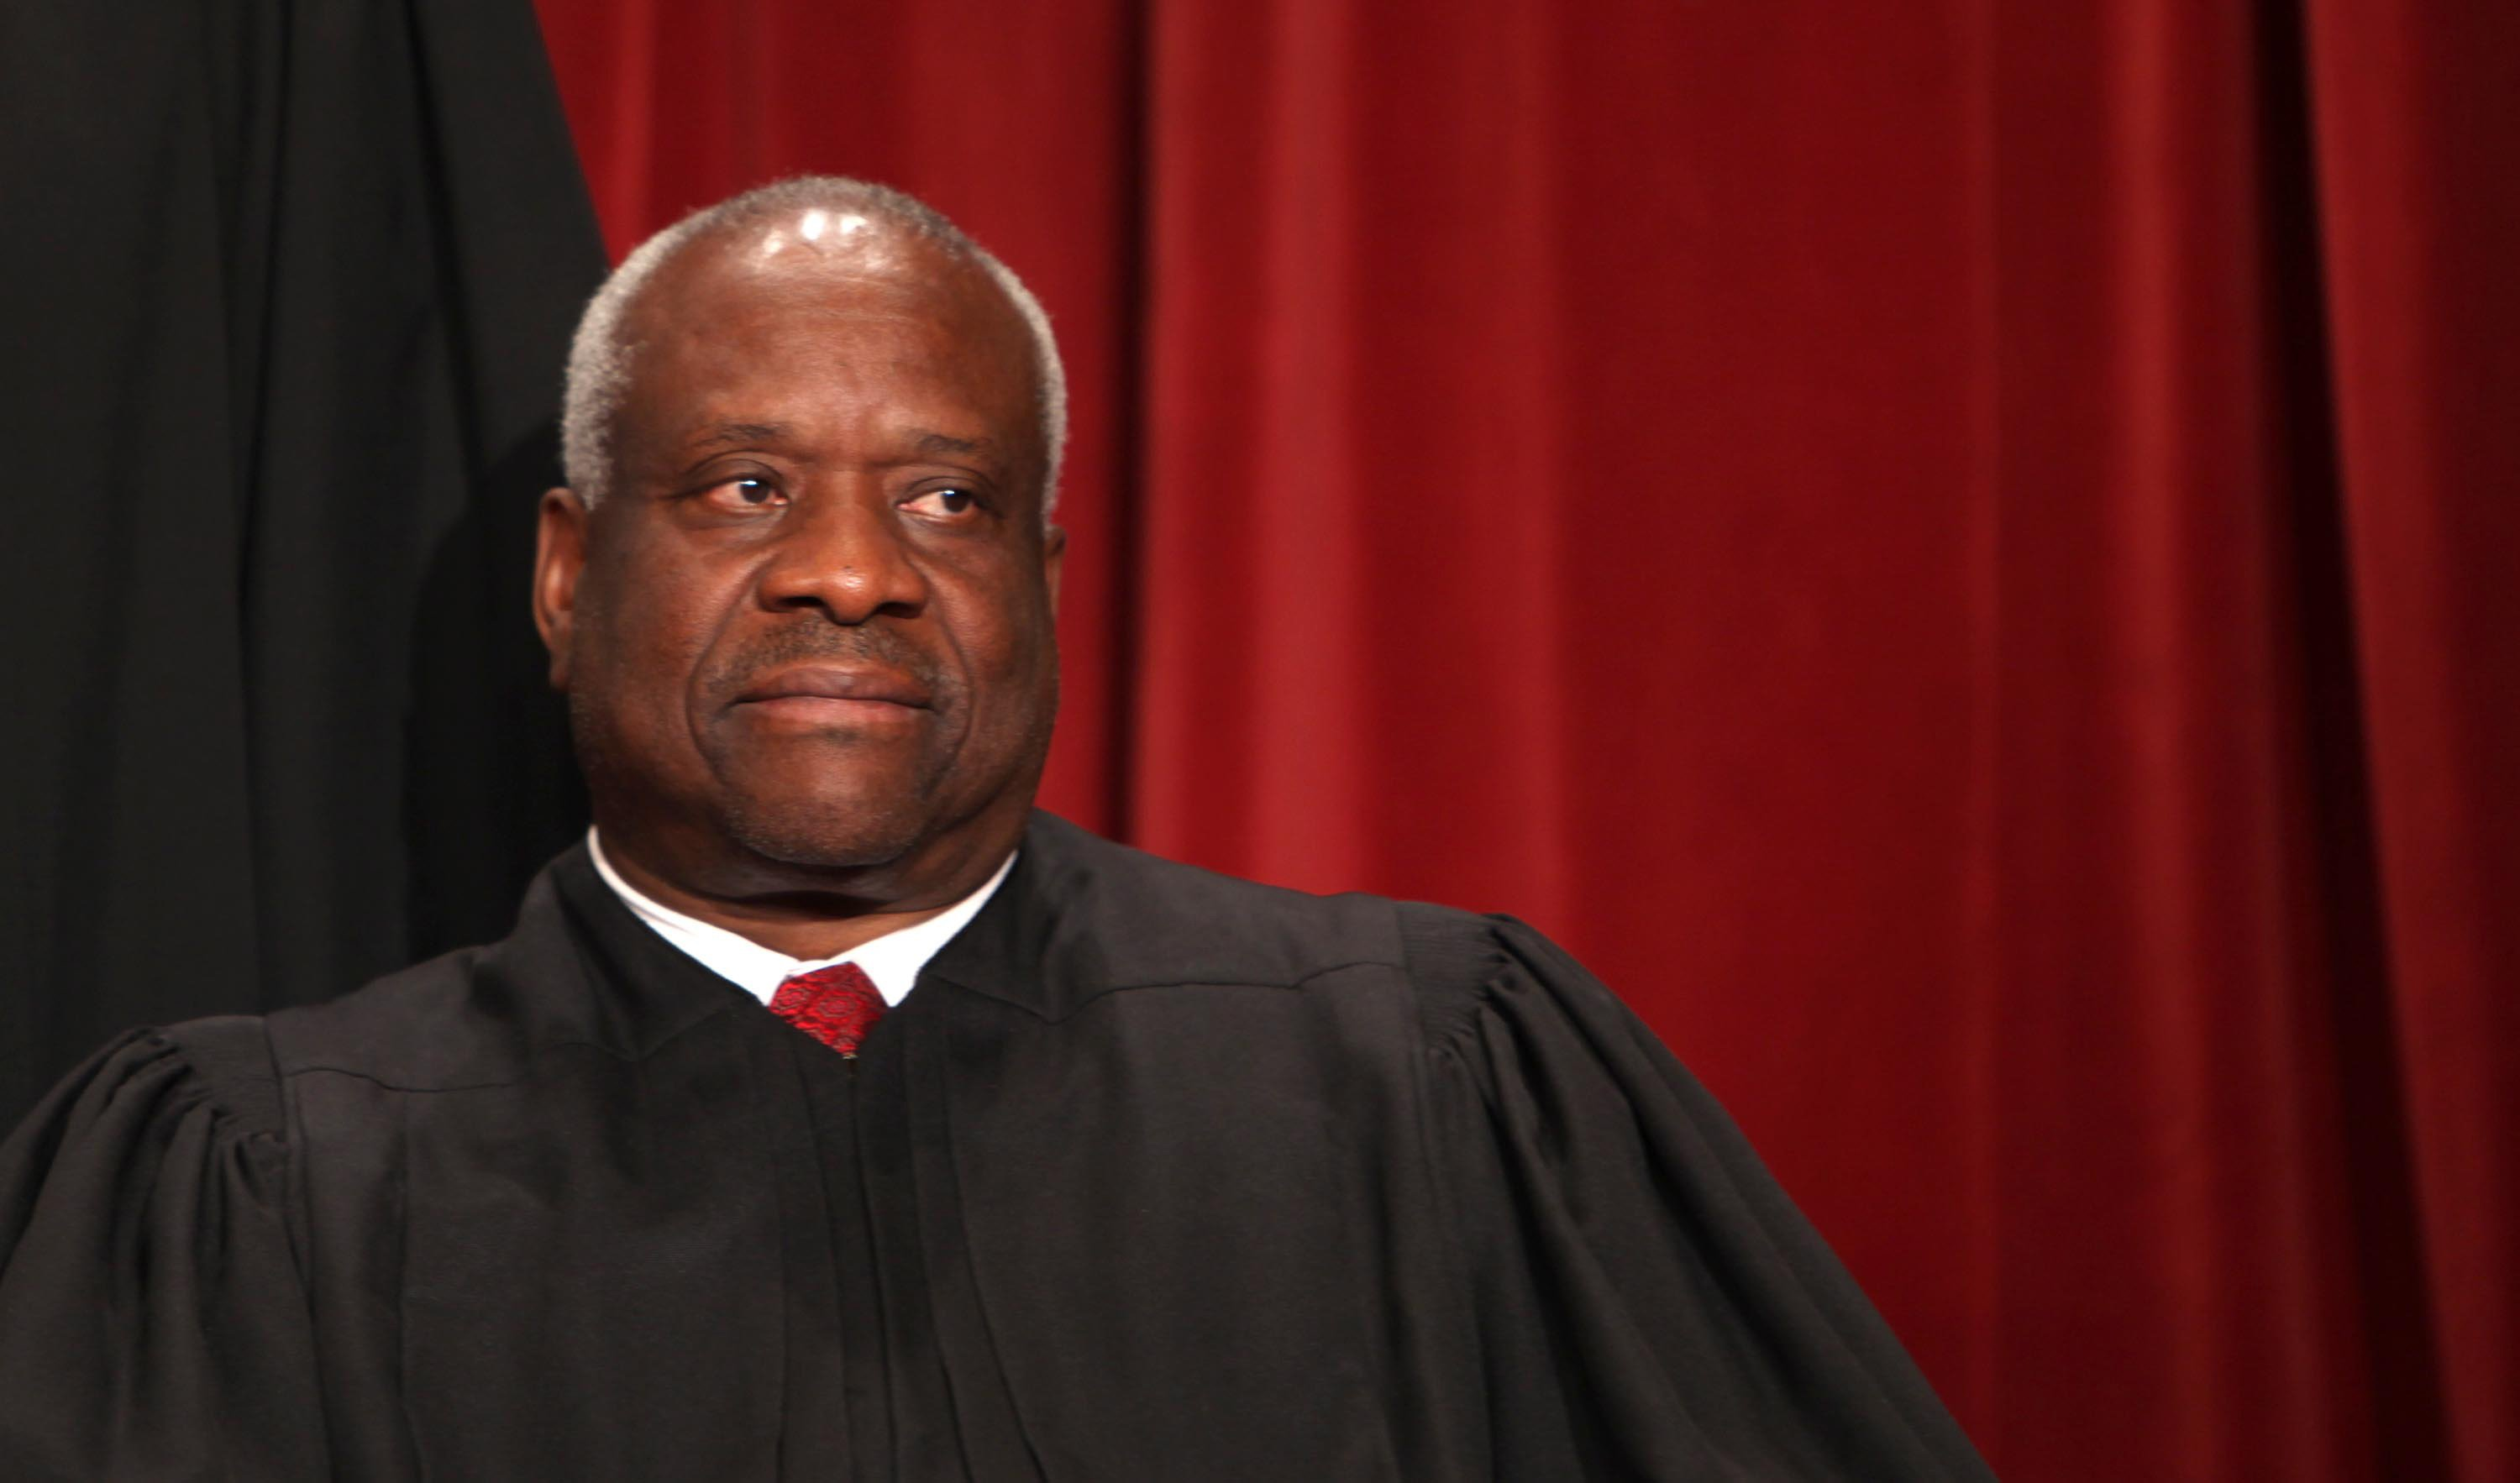 """Supreme Court Justice Clarence Thomas said in a rare public appearance Thursday he's exhausted with how everyone seems to consider themselves a victim these days. """"At some point, we're going to be fatigued with everybody being the victim,"""" Thomas, the second African American to serve on the Supreme Court, said during an on-stage interview at …"""